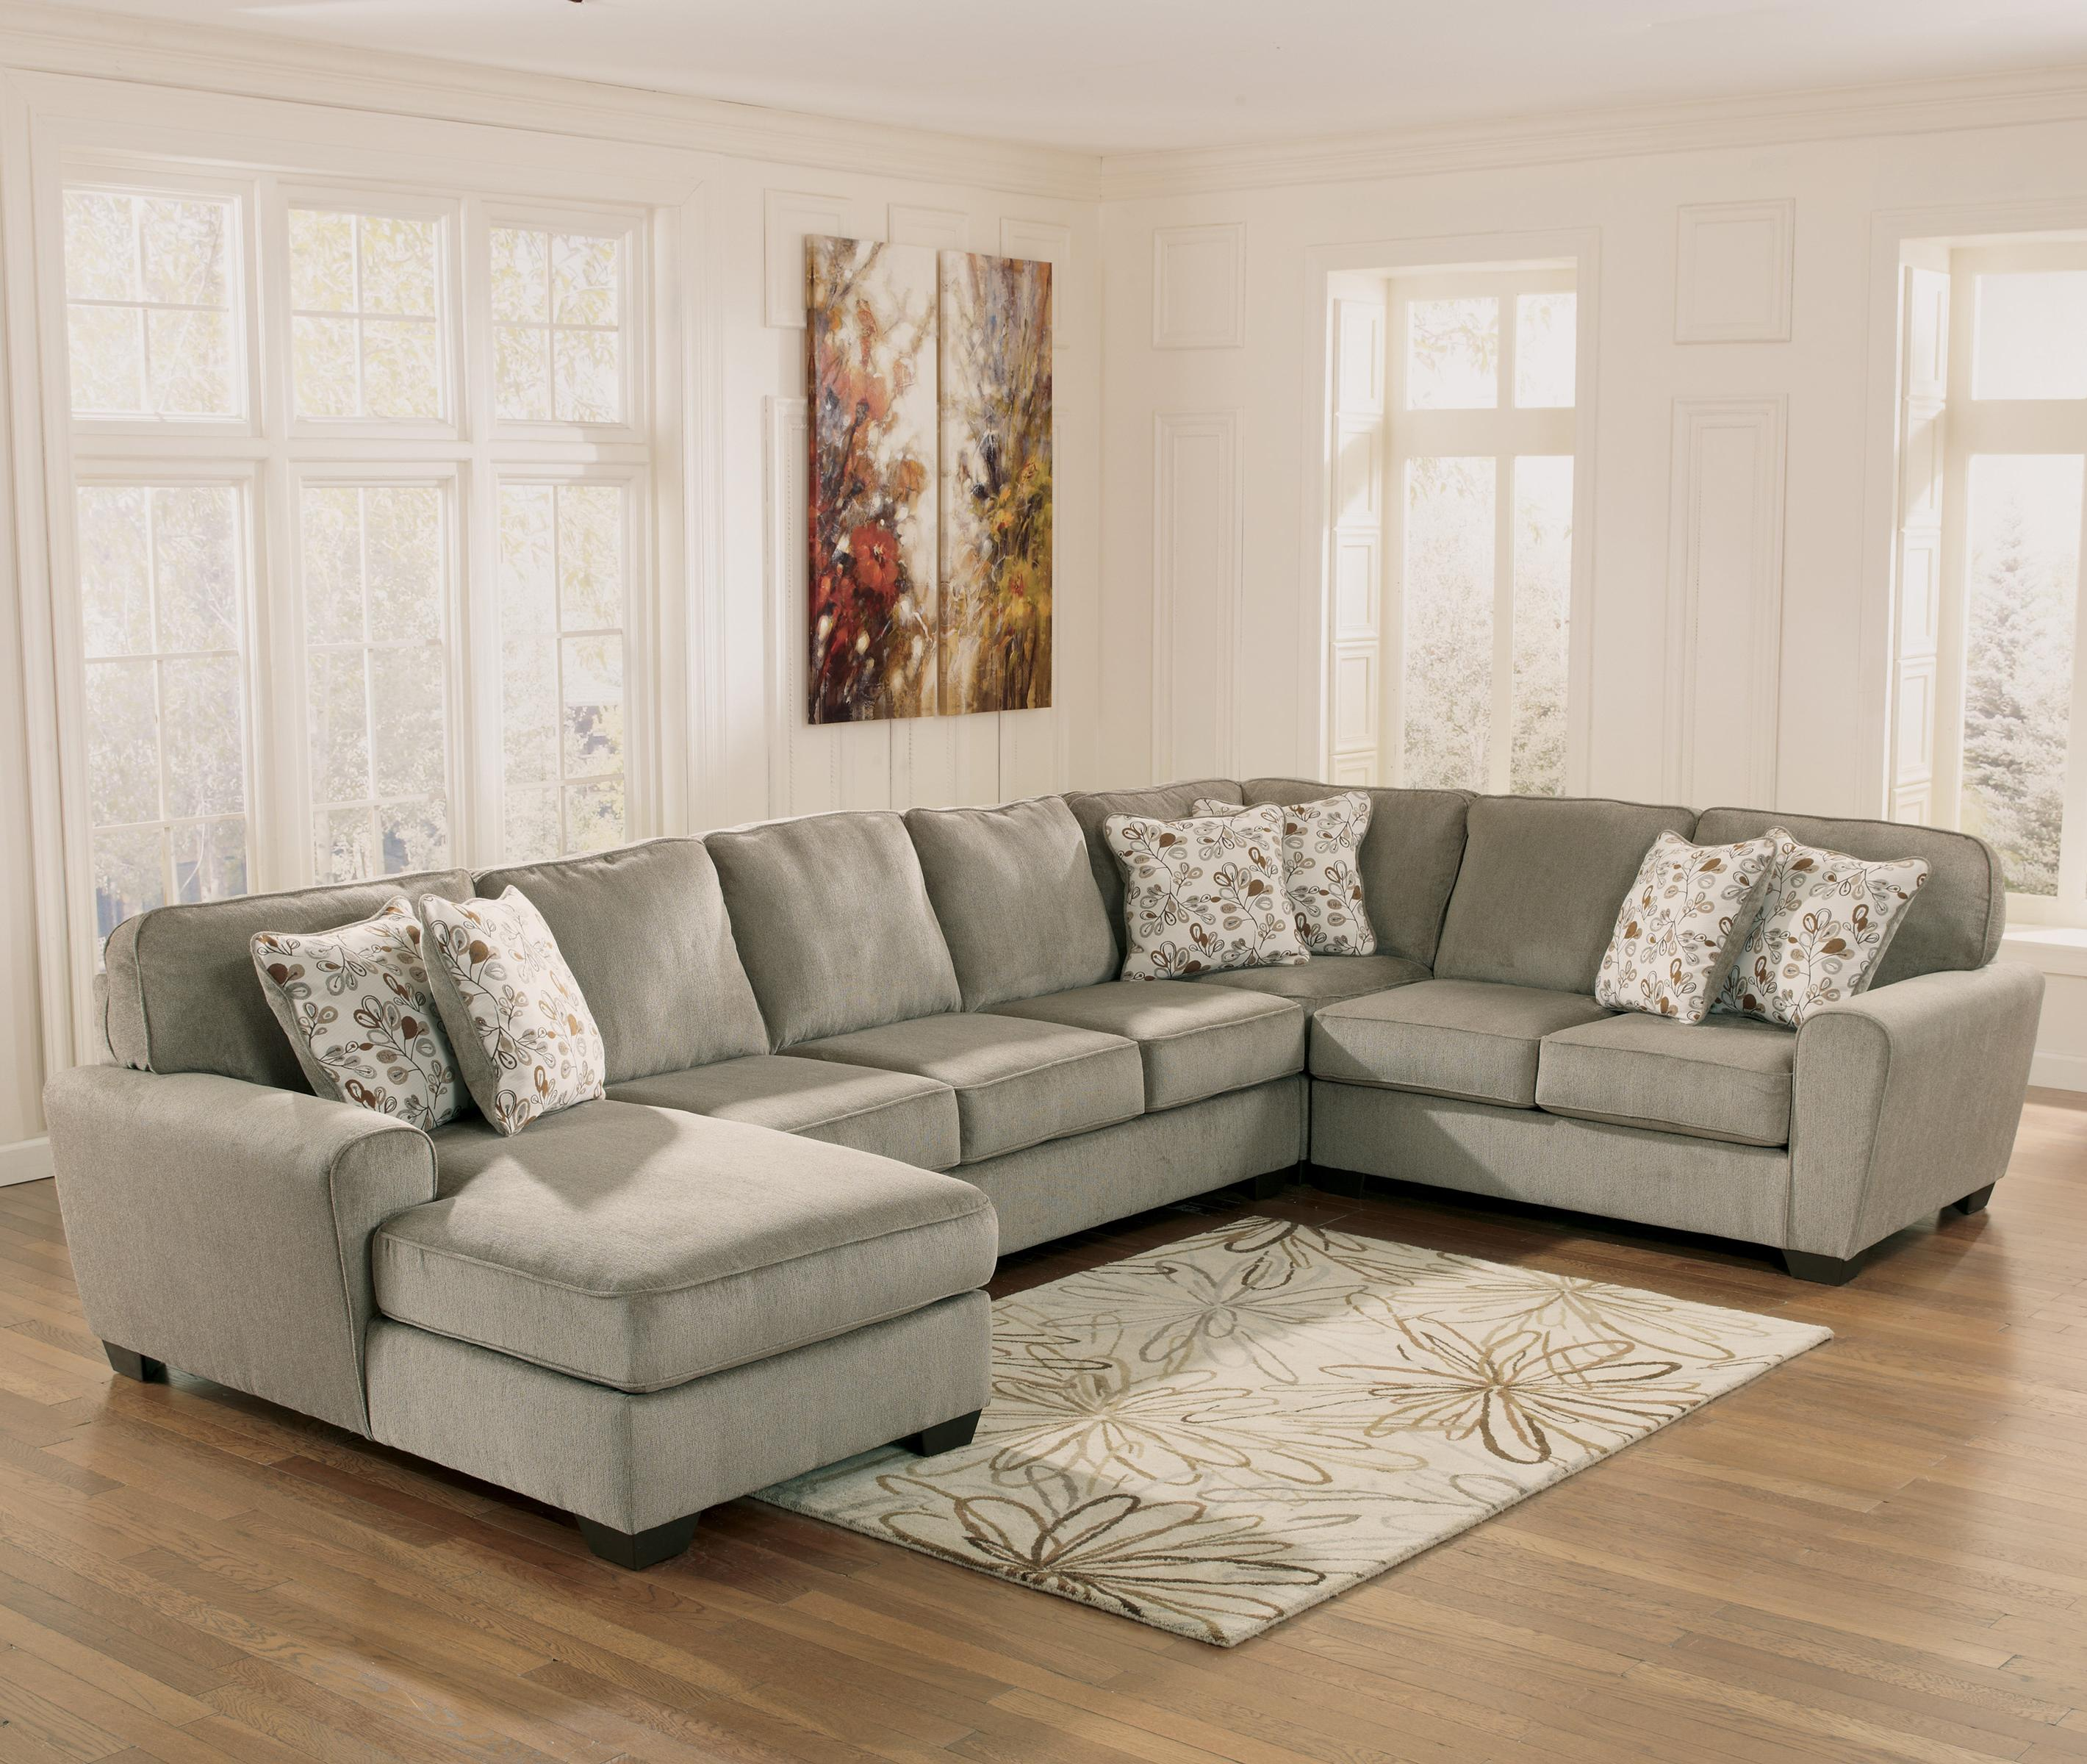 Ashley furniture patola park patina 4 piece sectional for Ashley chaise sectional